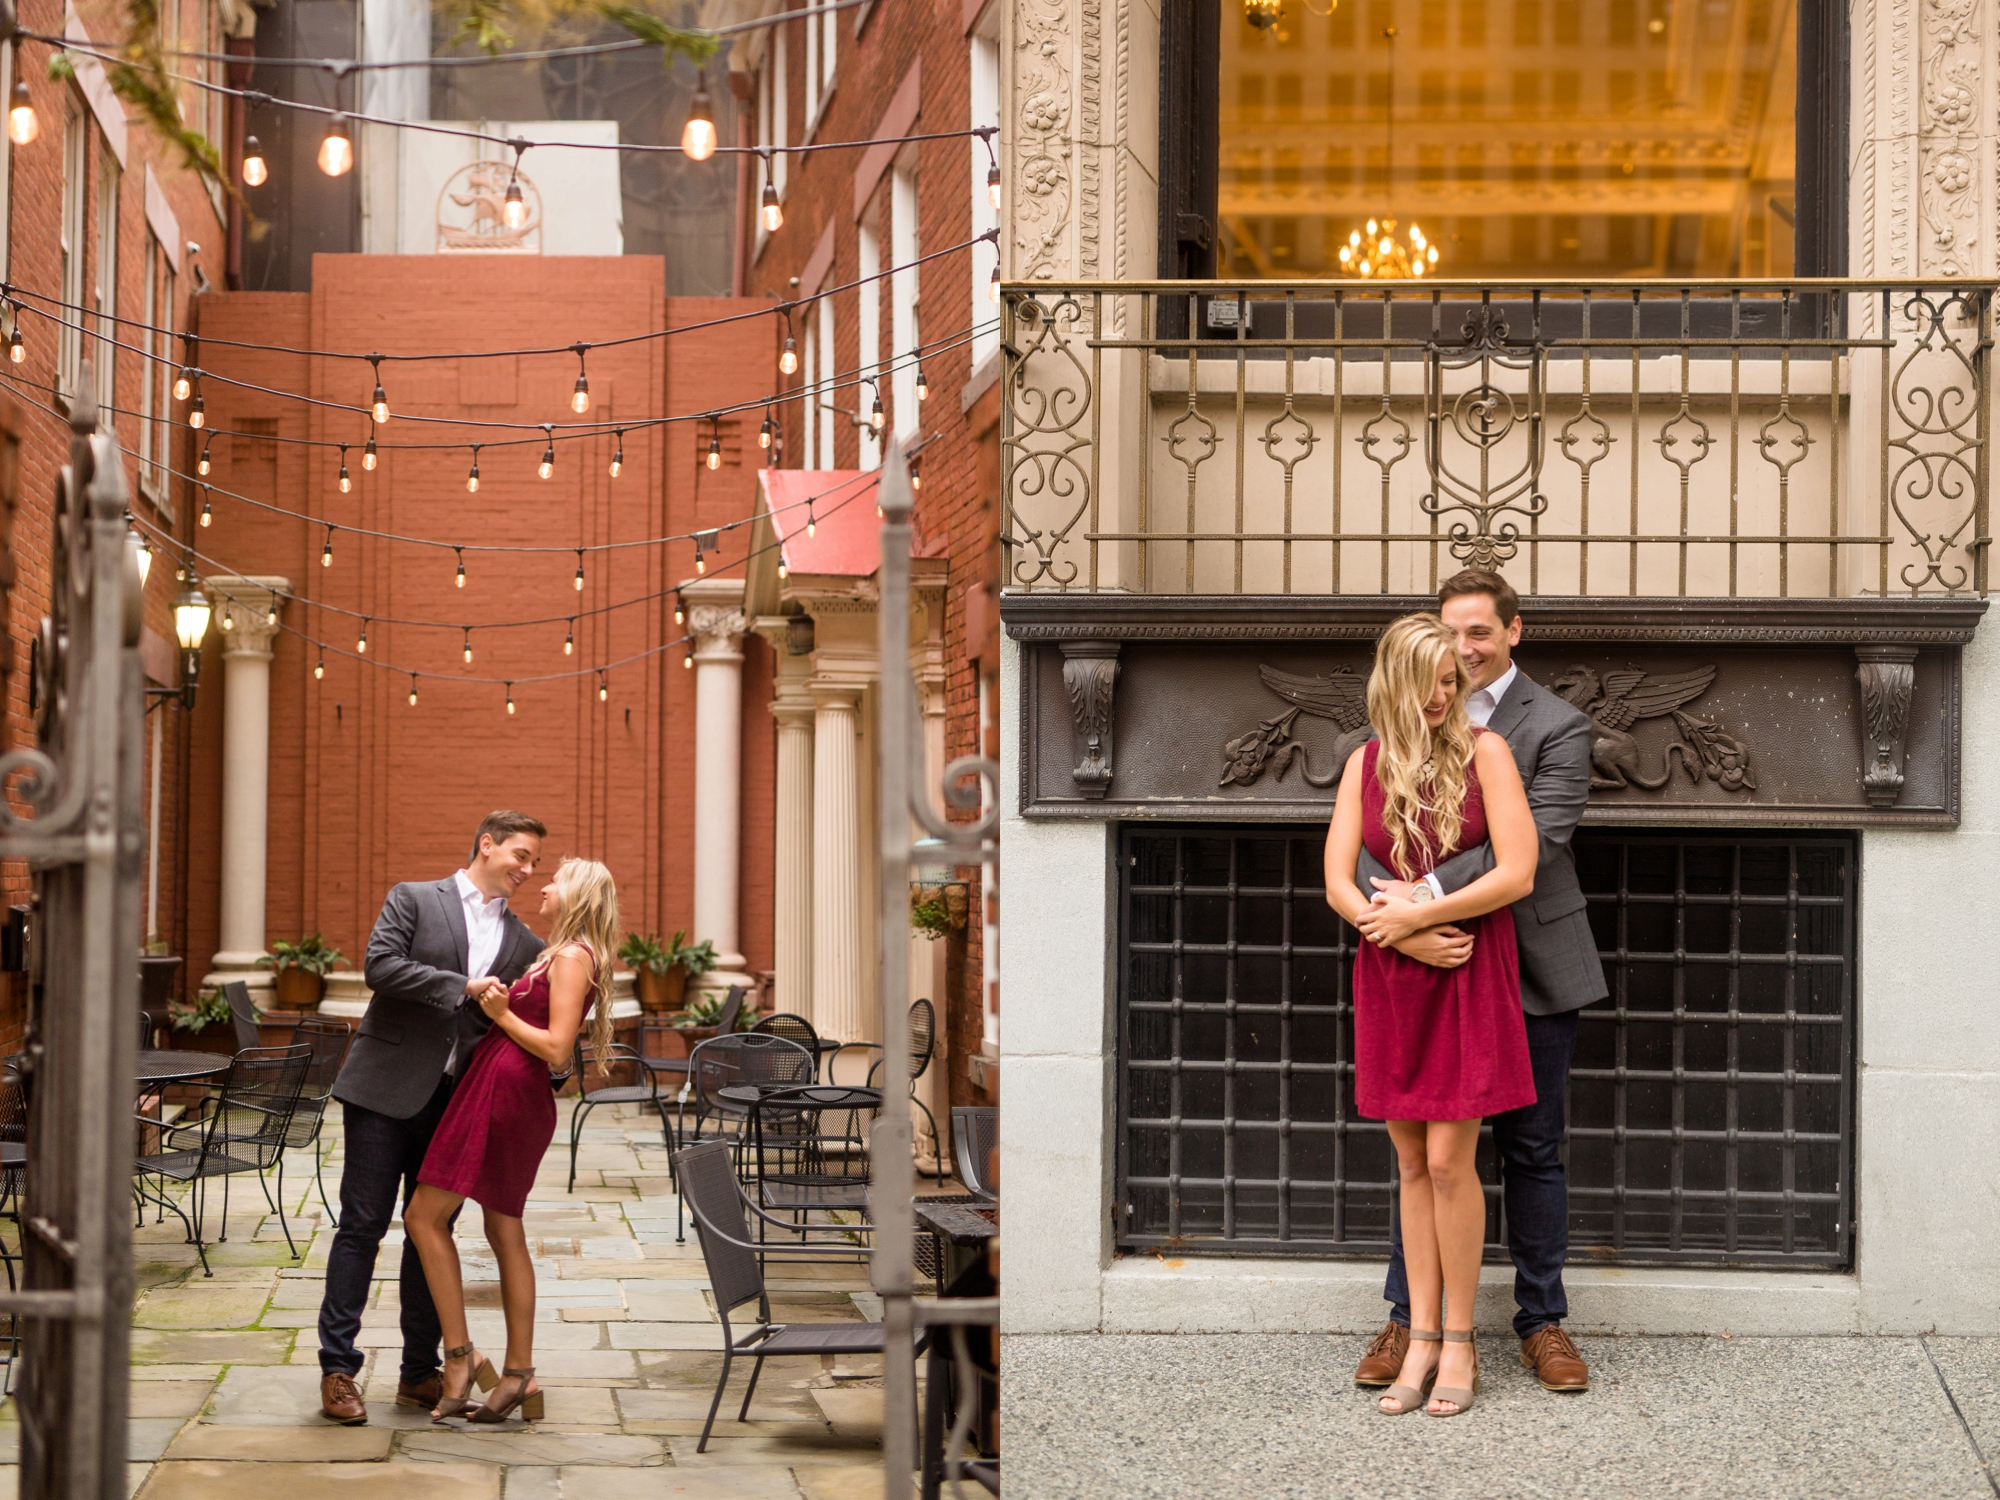 pittsburgh wedding photographer, pittsburgh engagement photos, best spot in pittsburgh for photo shoot, north shore engagement pictures, downtown pittsburgh engagement photos